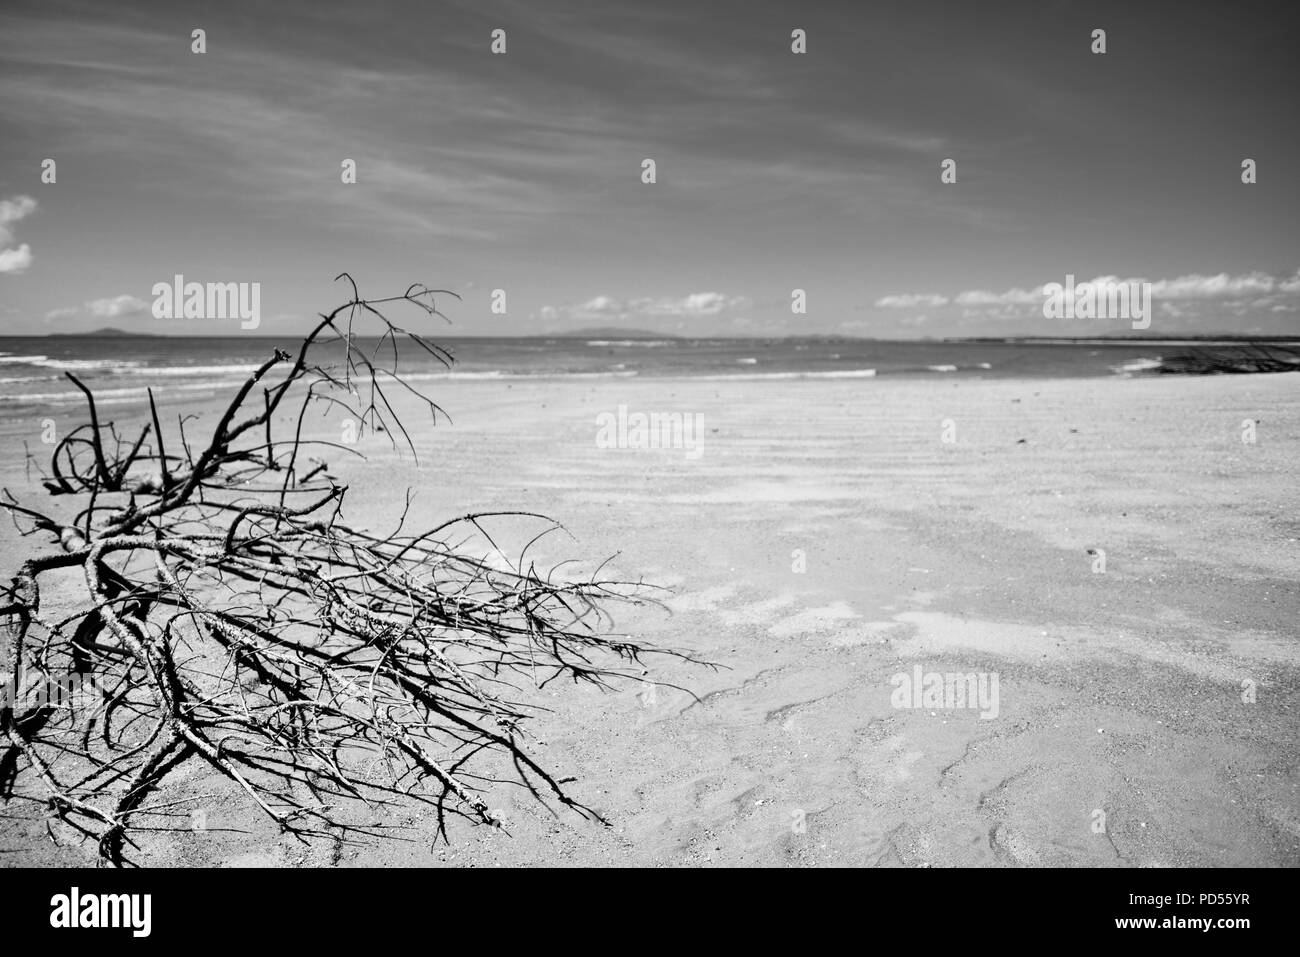 Dead trees on a beach a sign of things to come with global warming, Toomulla QLD, Australia - Stock Image